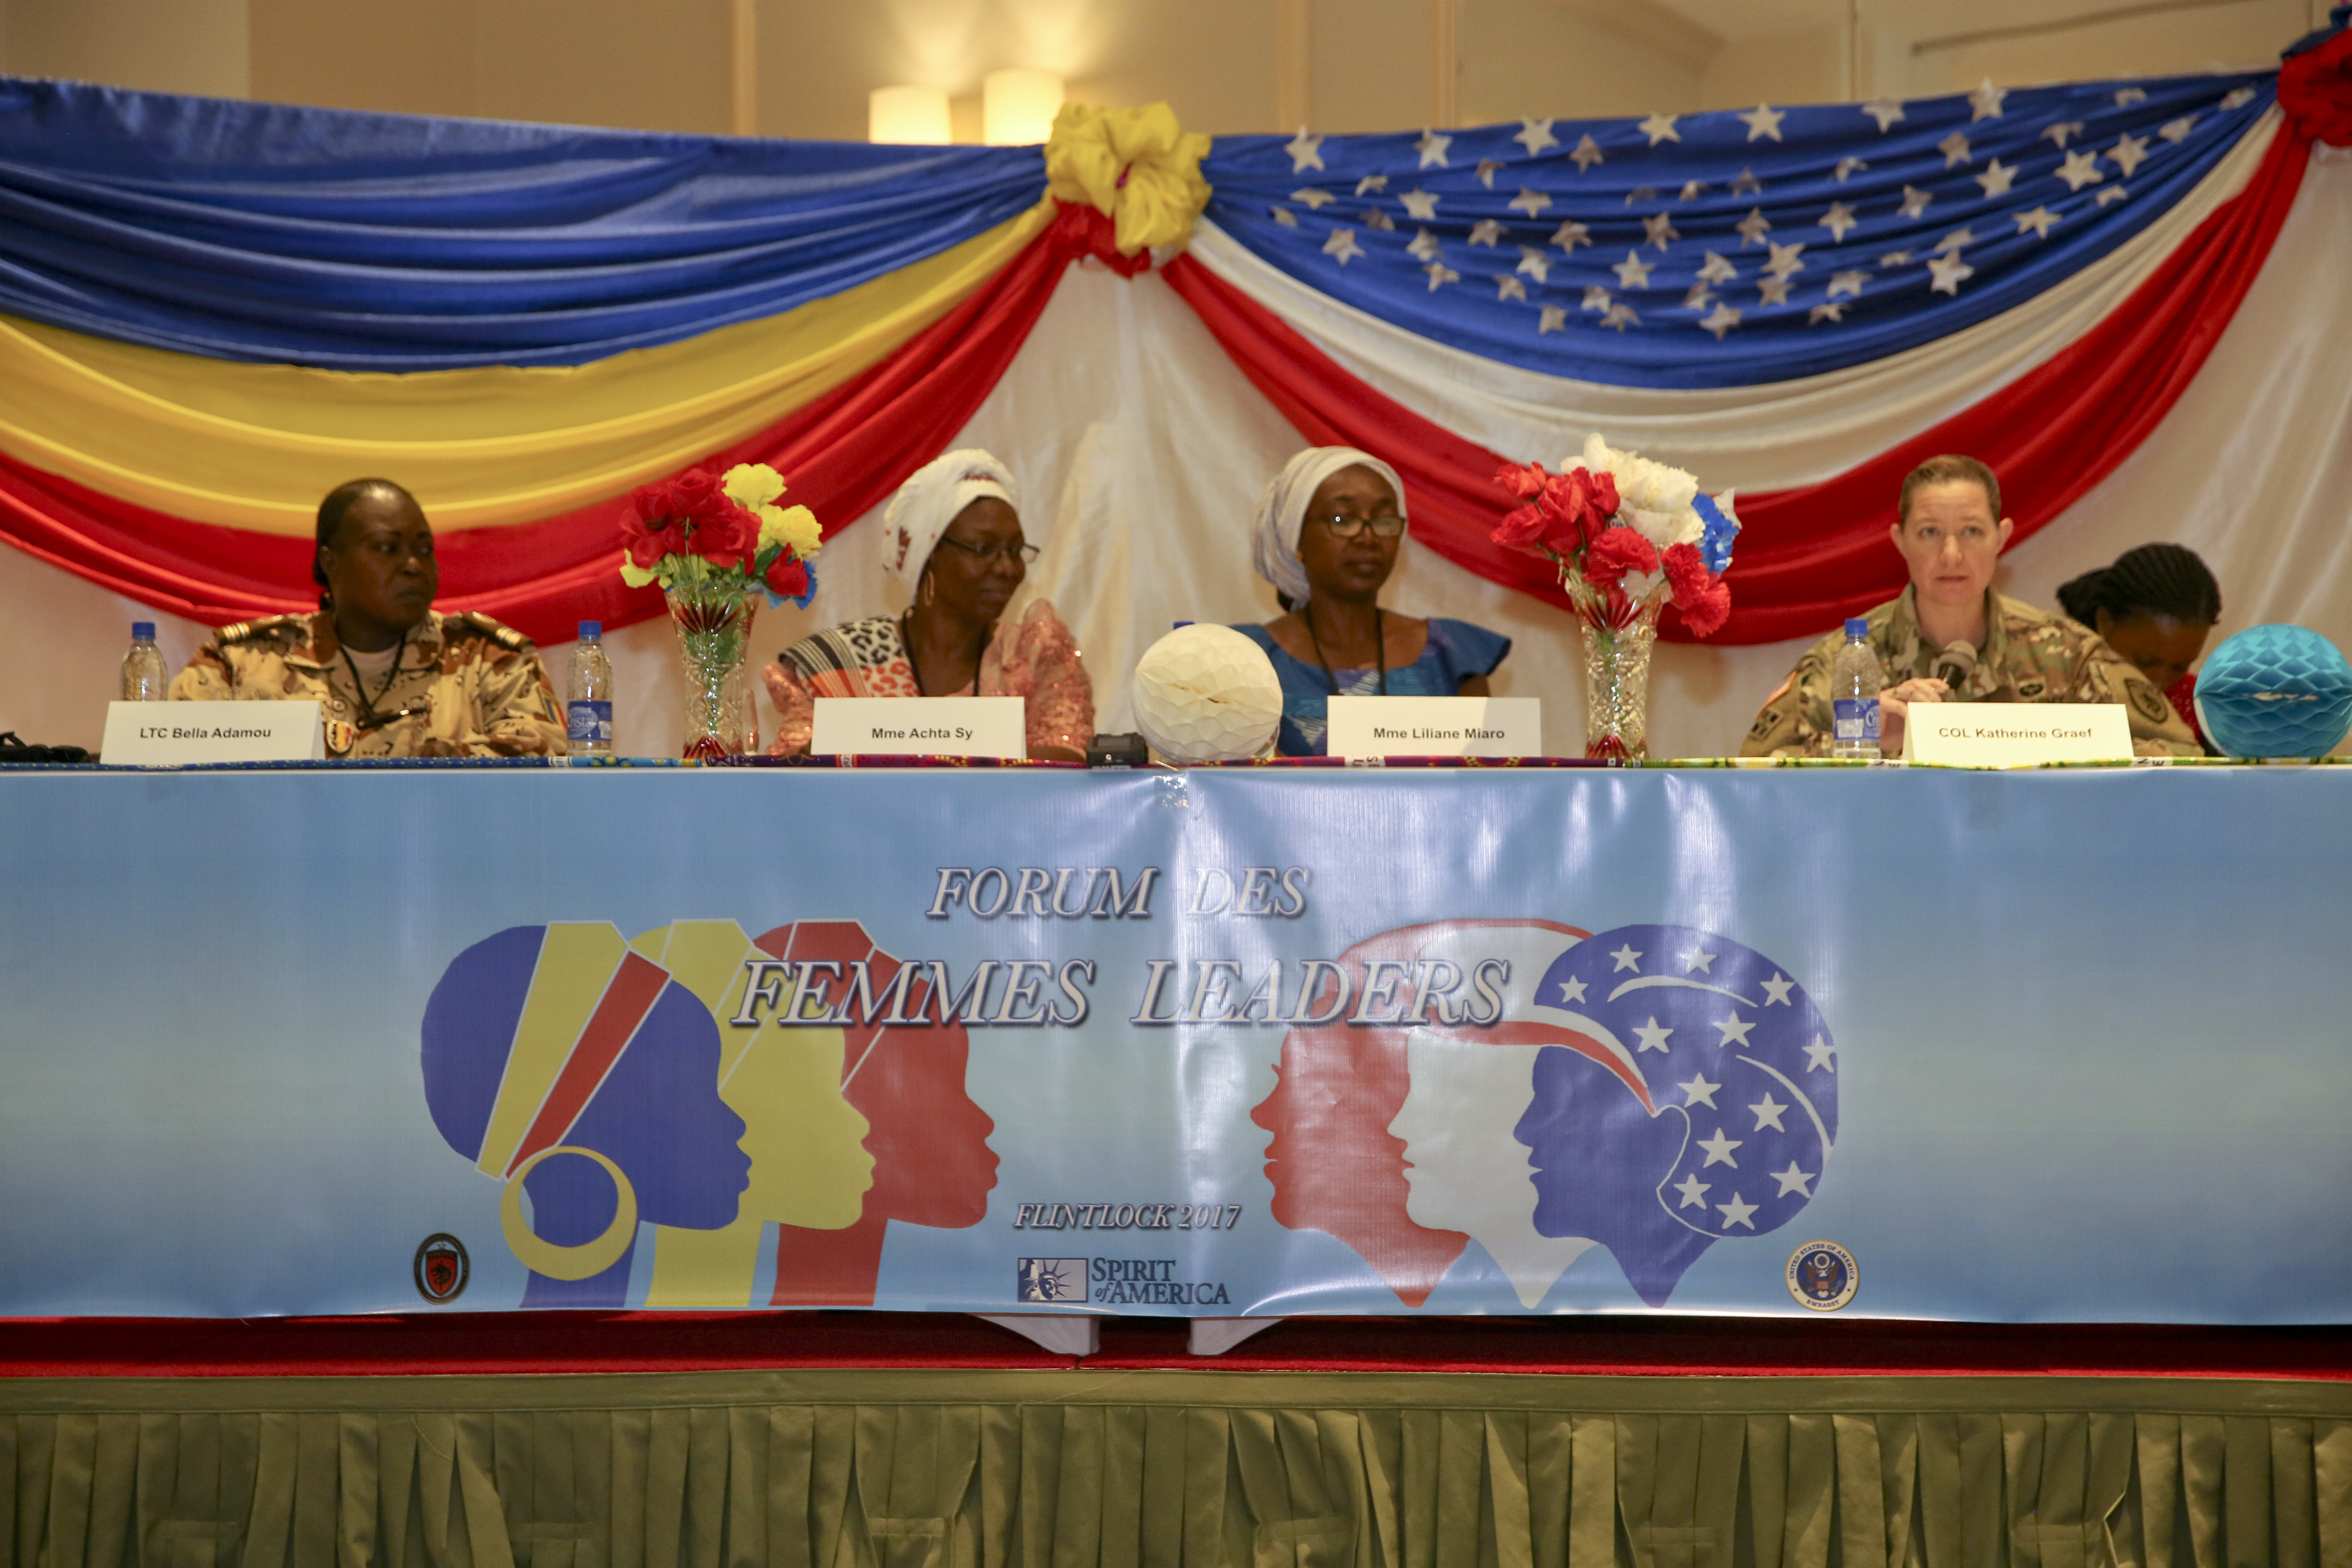 Special Operations Command Africa hosted its first Women's Leadership Forum on the eve of International Women's Day in N'Djamena, Chad, Mar. 7, 2017, as a part of Exercise Flintlock 2017.  This leadership discussion forum was led by Chadian women from across the spectrum of employment to address Chadian challenges and opportunities, and was facilitated by the U.S. Embassy and Spirit of America. Flintlock is an annual special operations exercise involving more than 20 nation forces that strengthens security institutions, promotes multinational sharing of information, and develops interoperability among partner nation in North and West Africa. (Photo by Sgt. Derek Hamilton/Released)